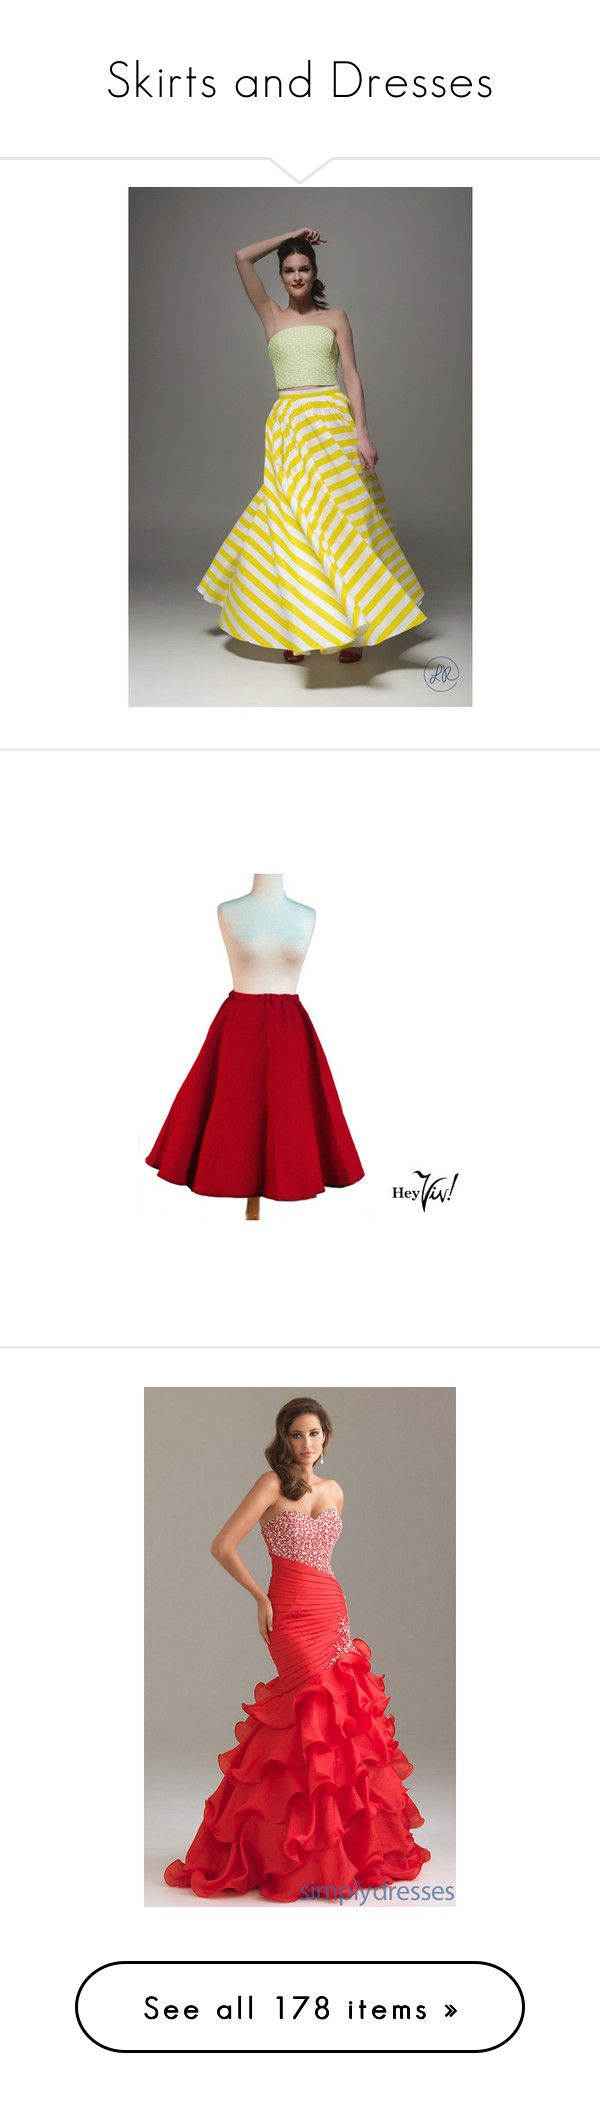 """Skirts and Dresses"" by eridans-blood-swapped-pants ❤ liked on Polyvore featuring skirts, women's clothing, yellow, long maxi skirts, long skater skirt, yellow skirt, yellow maxi skirt, long skirts, dresses and red beaded dress"